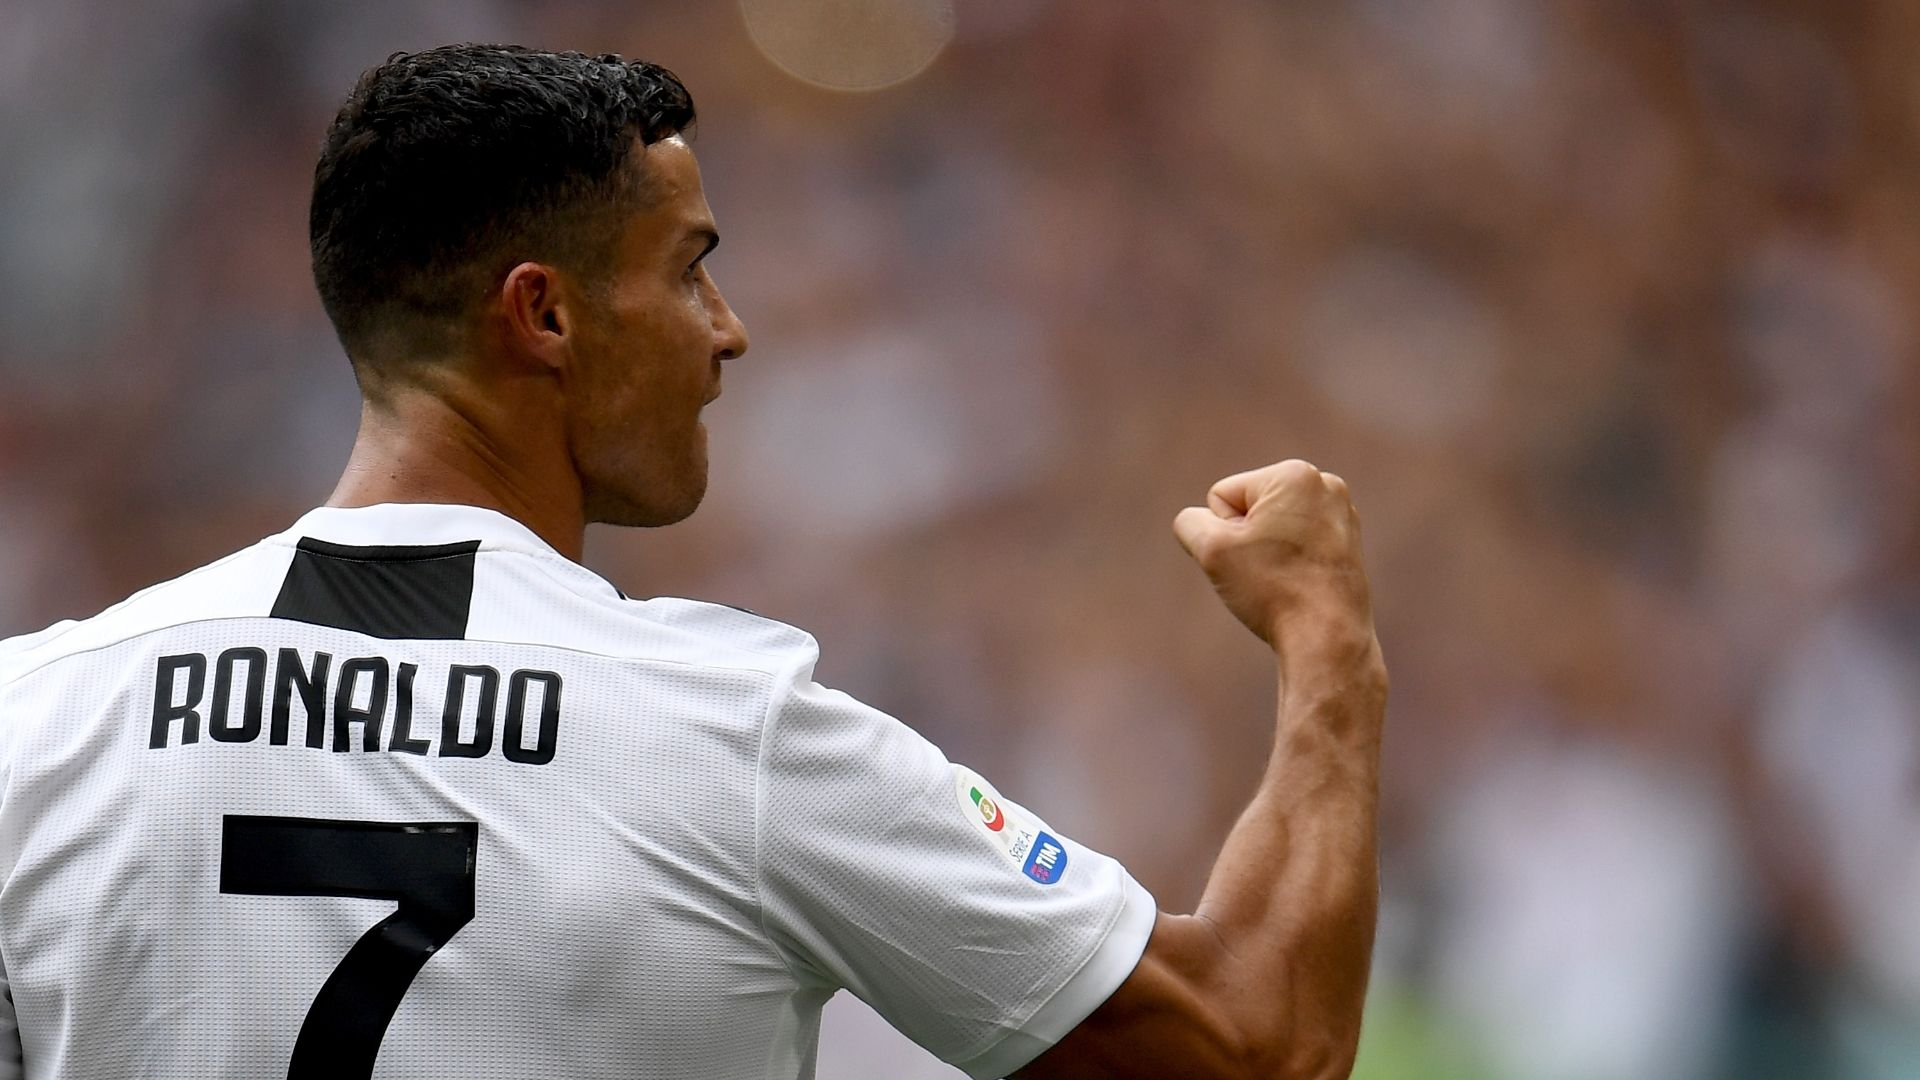 Ronaldo A Goal Machine And Money Making Machine For Juventus